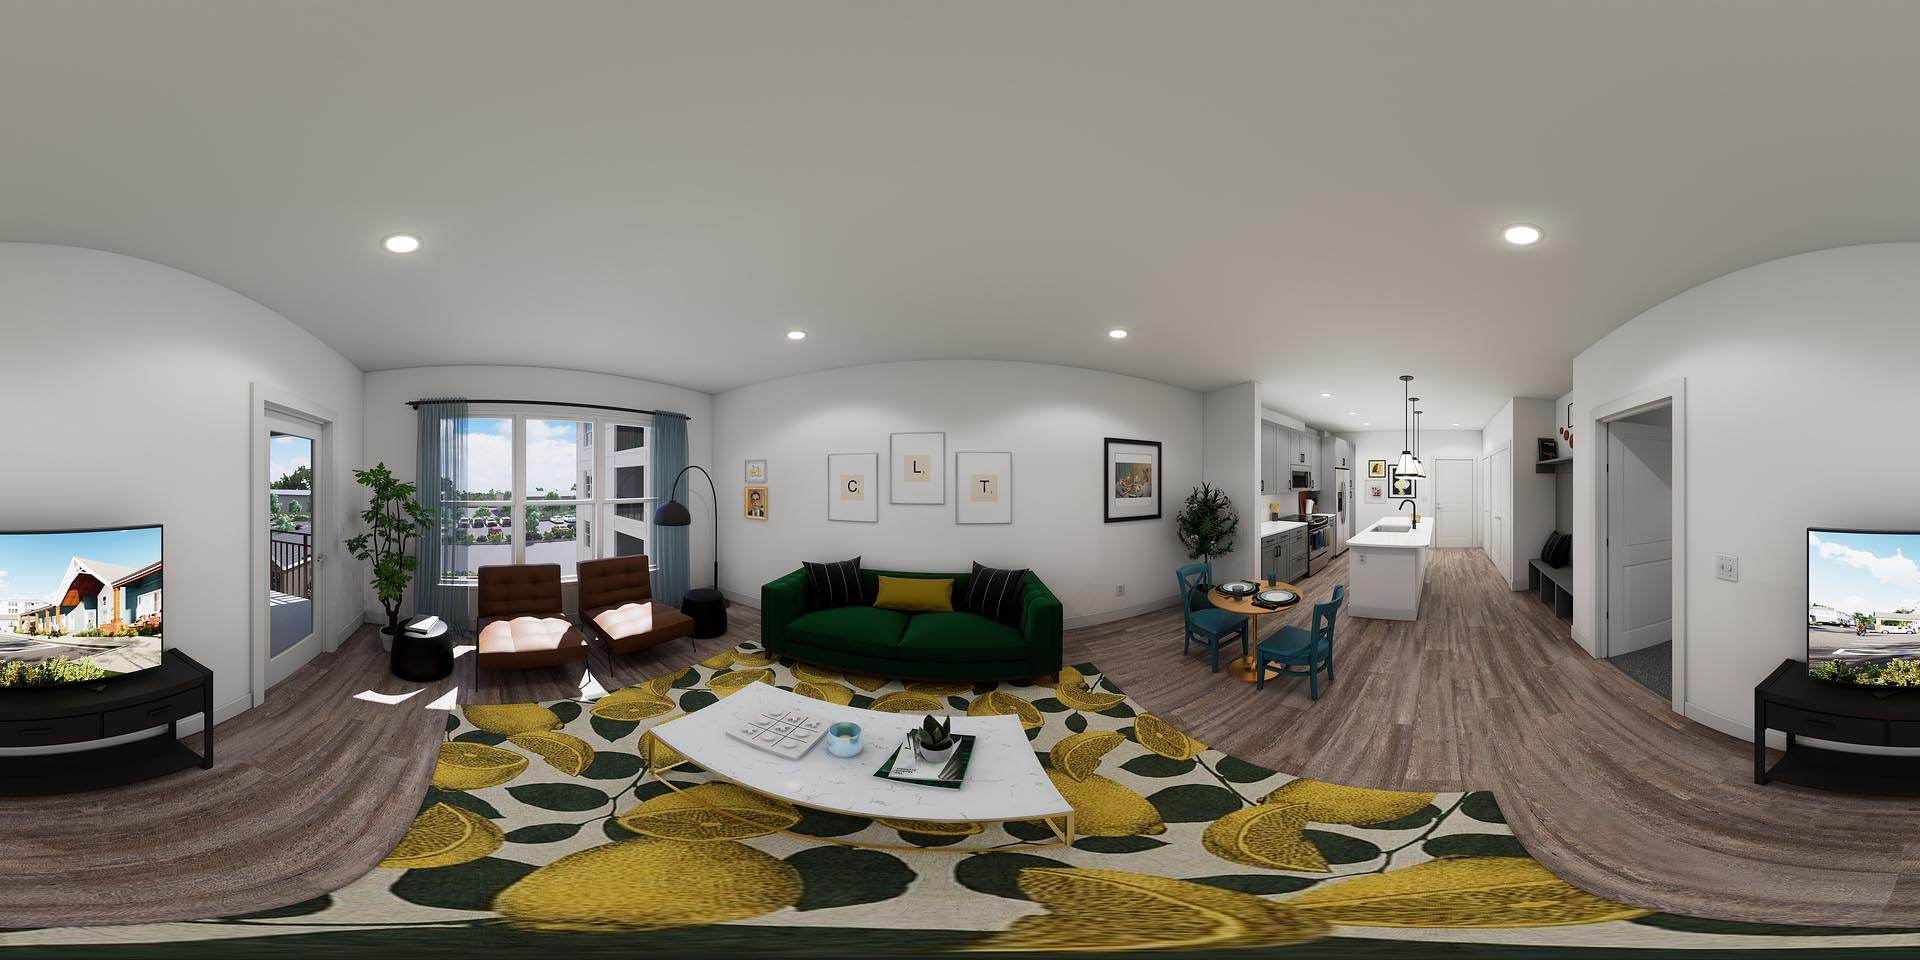 A 360 rendering of an apartment living room